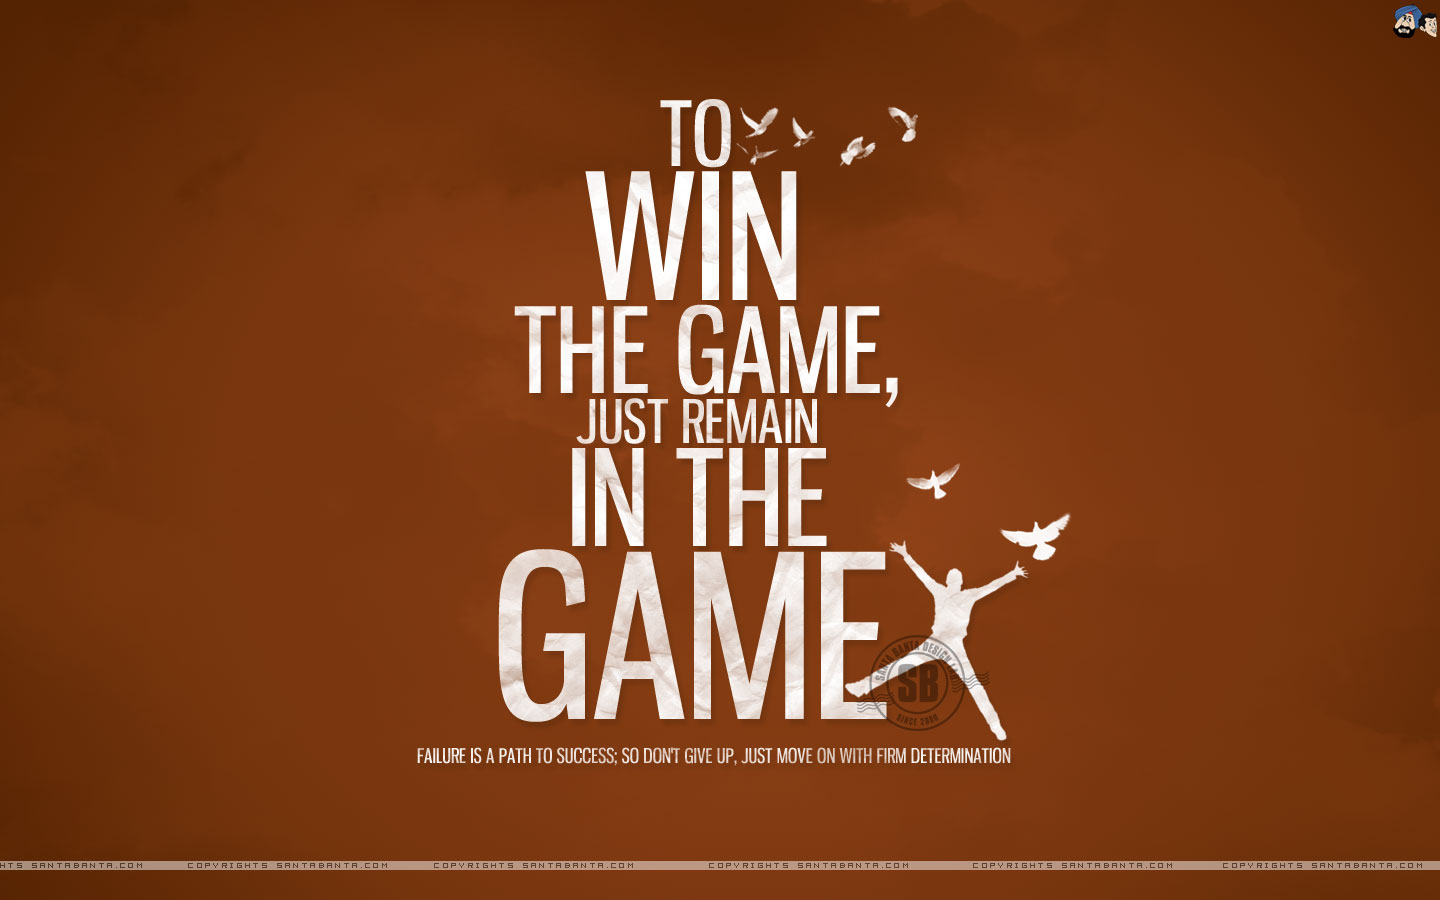 Motivational wallpaper on Winning : To Win the game | Dont Give Up ...